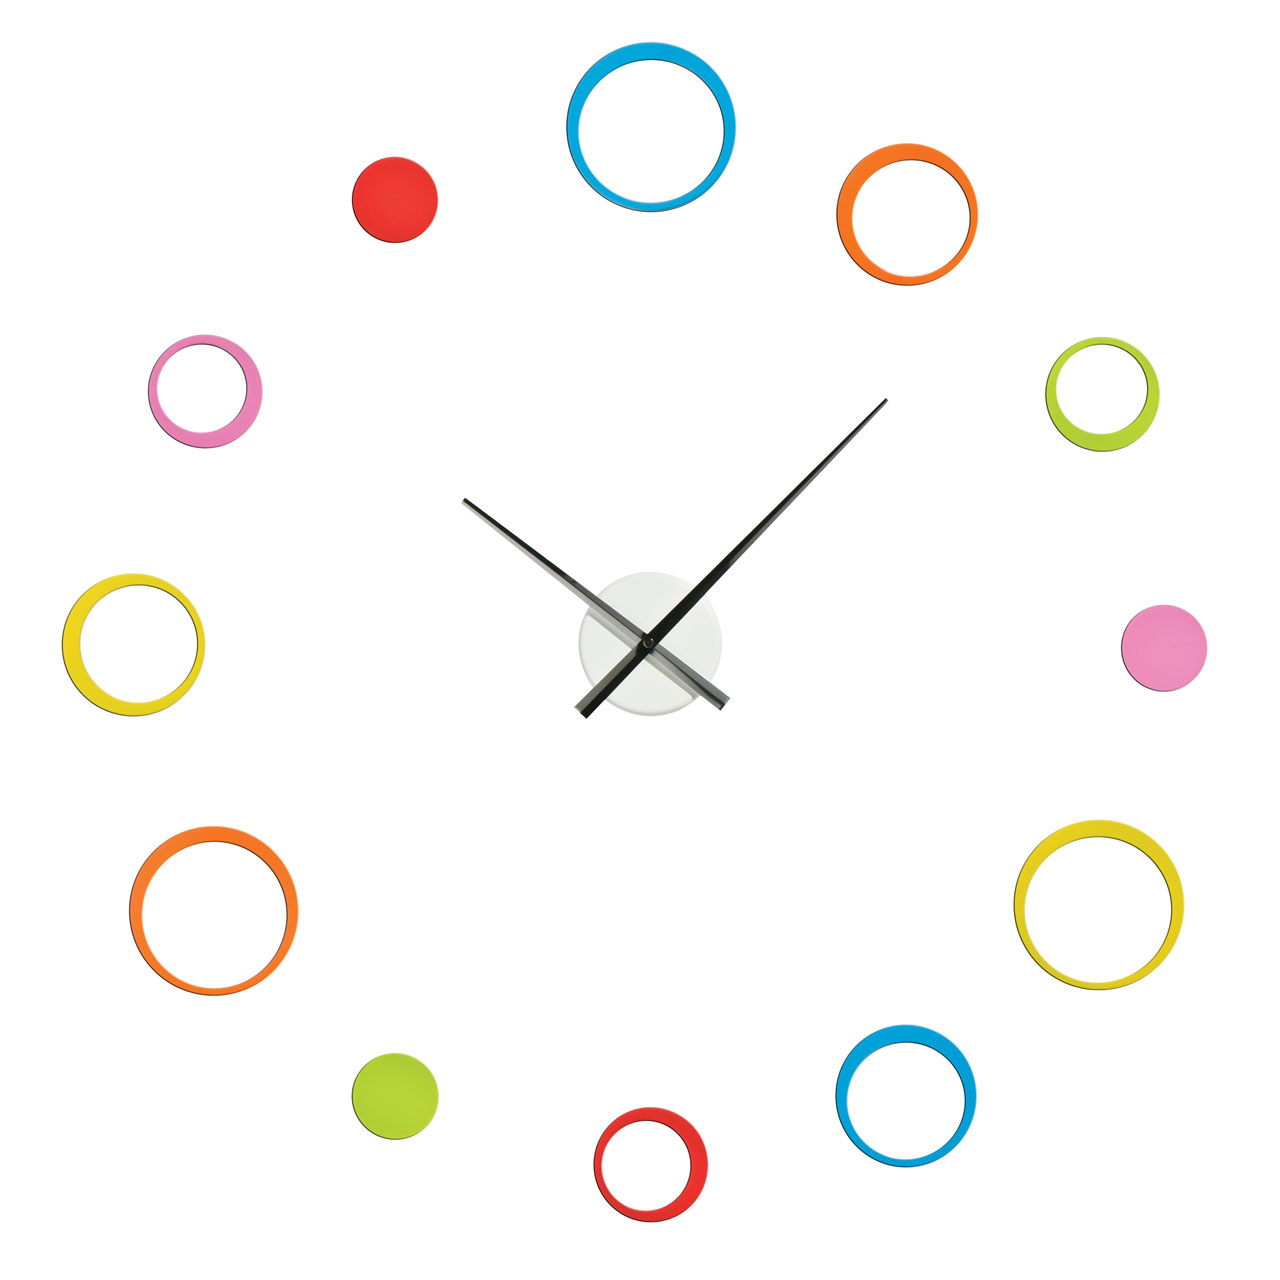 Diy wall clock with 12 multi coloured circles customisable layout diy wall clock with 12 multi coloured circles customisable layout self adhesive amipublicfo Choice Image